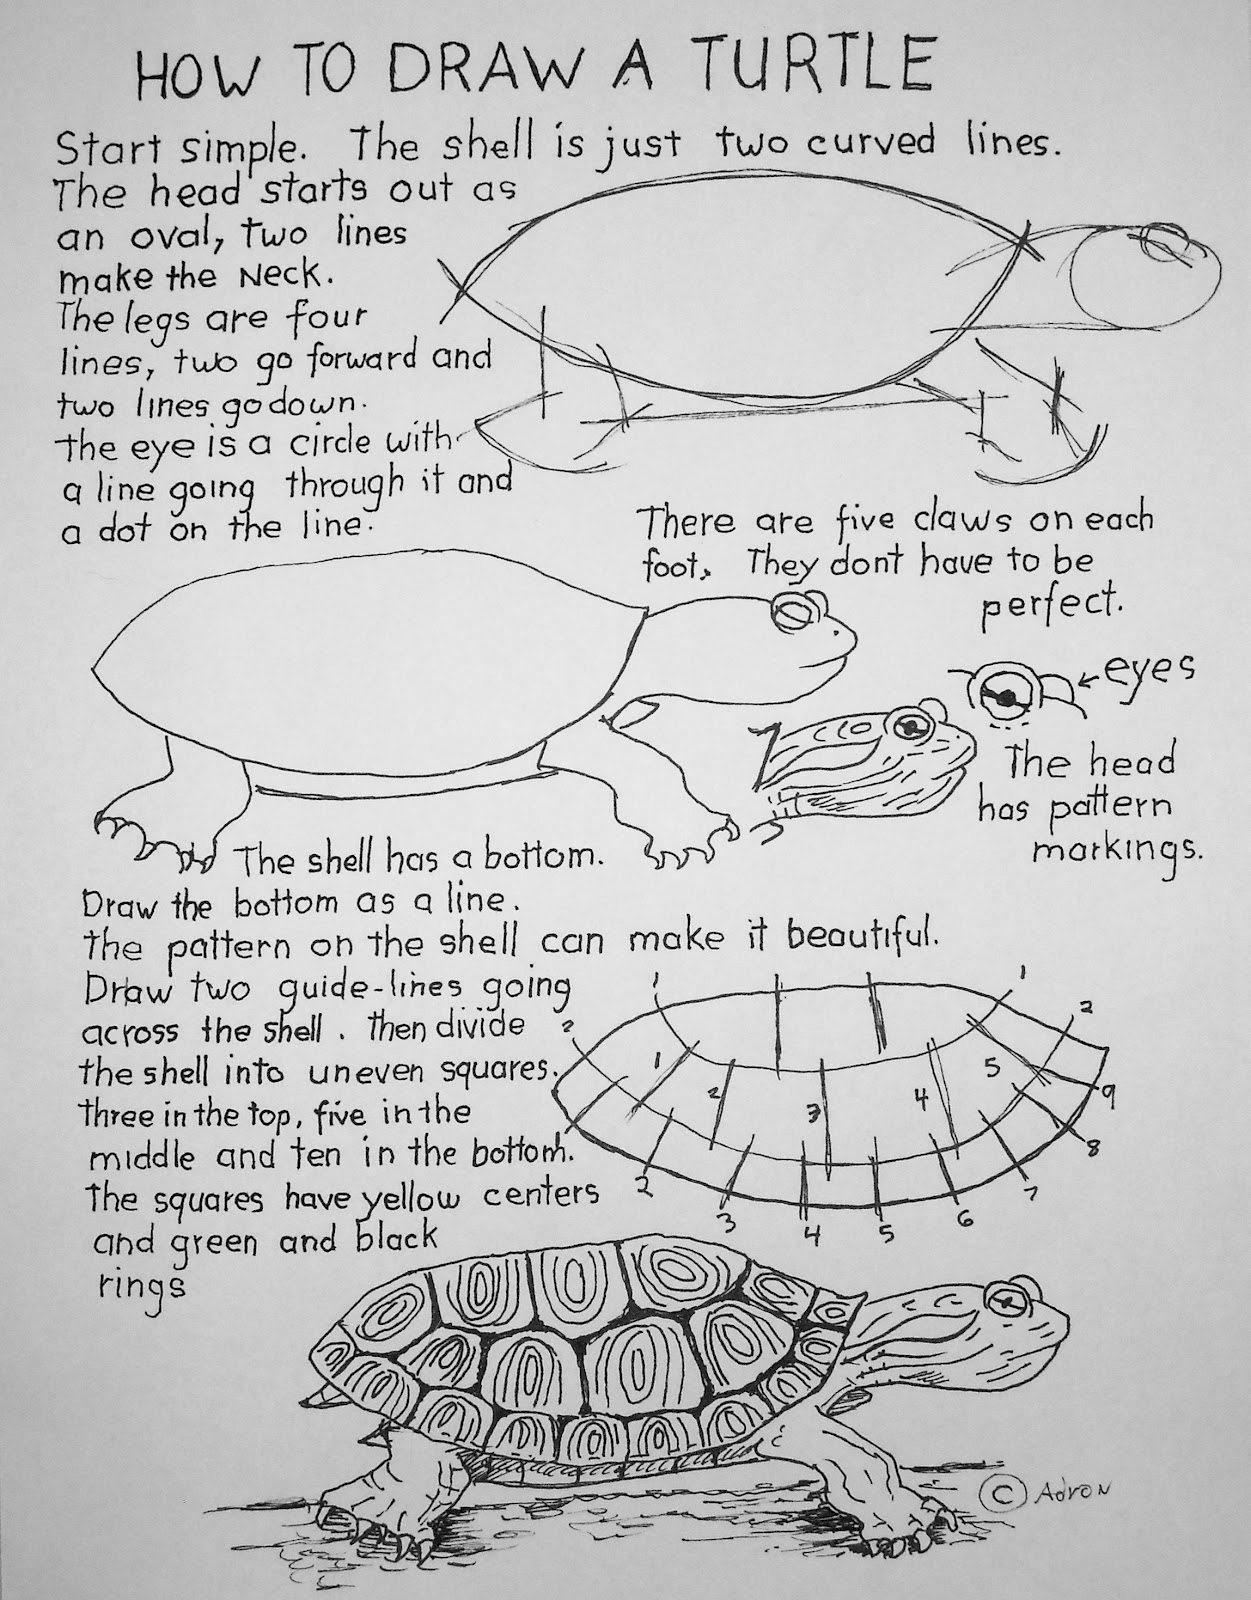 HOW TO DRAW A TURTULE